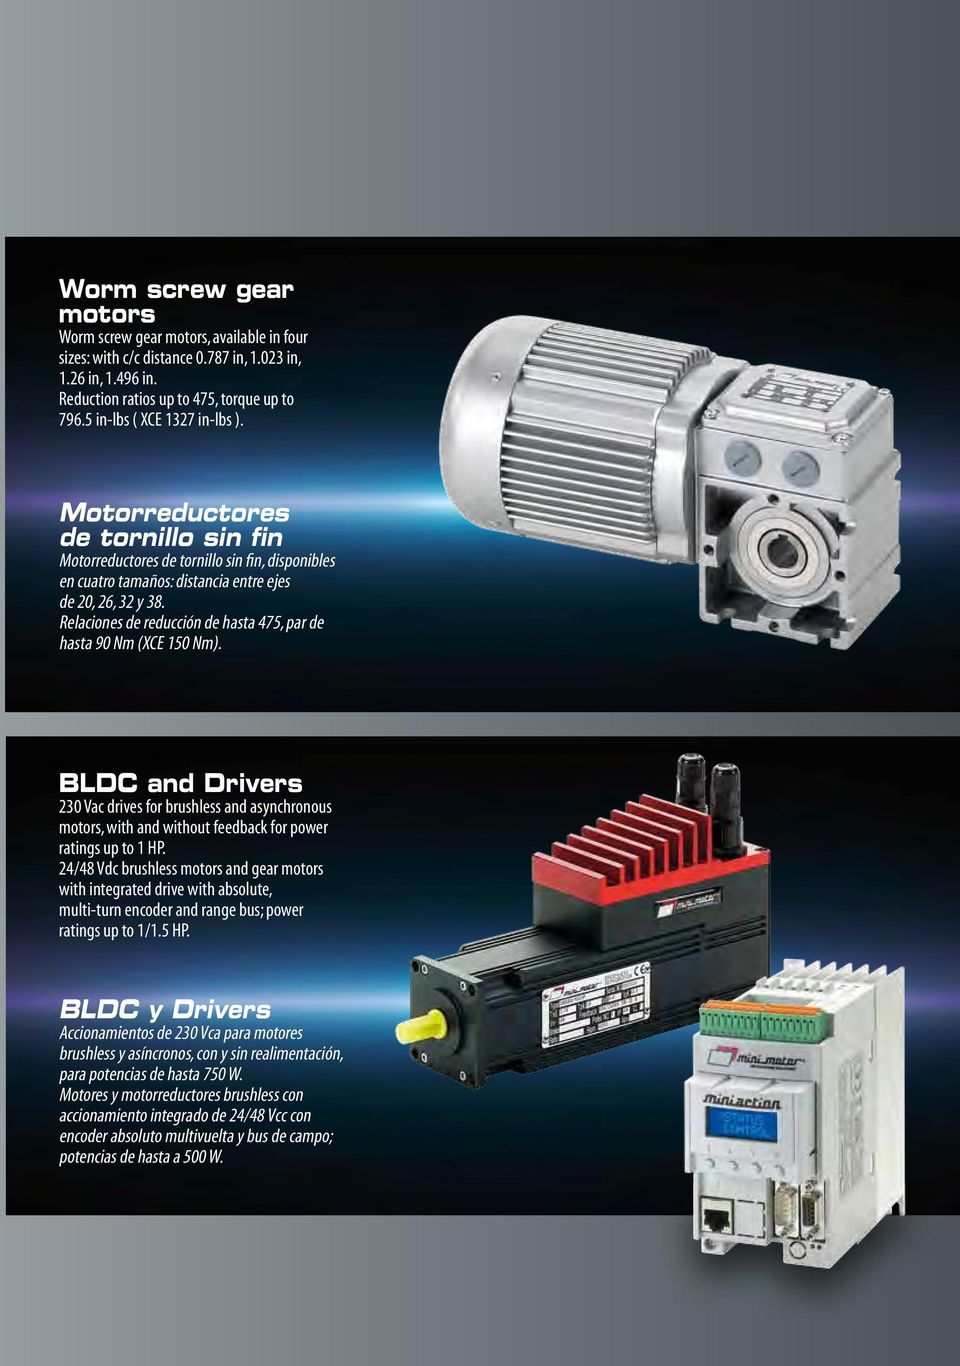 Relaciones de reducción de hasta 475, par de hasta 90 Nm (XCE 150 Nm). BLDC and Drivers 230 Vac drives for brushless and asynchronous motors, with and without feedback for power ratings up to 1 HP.